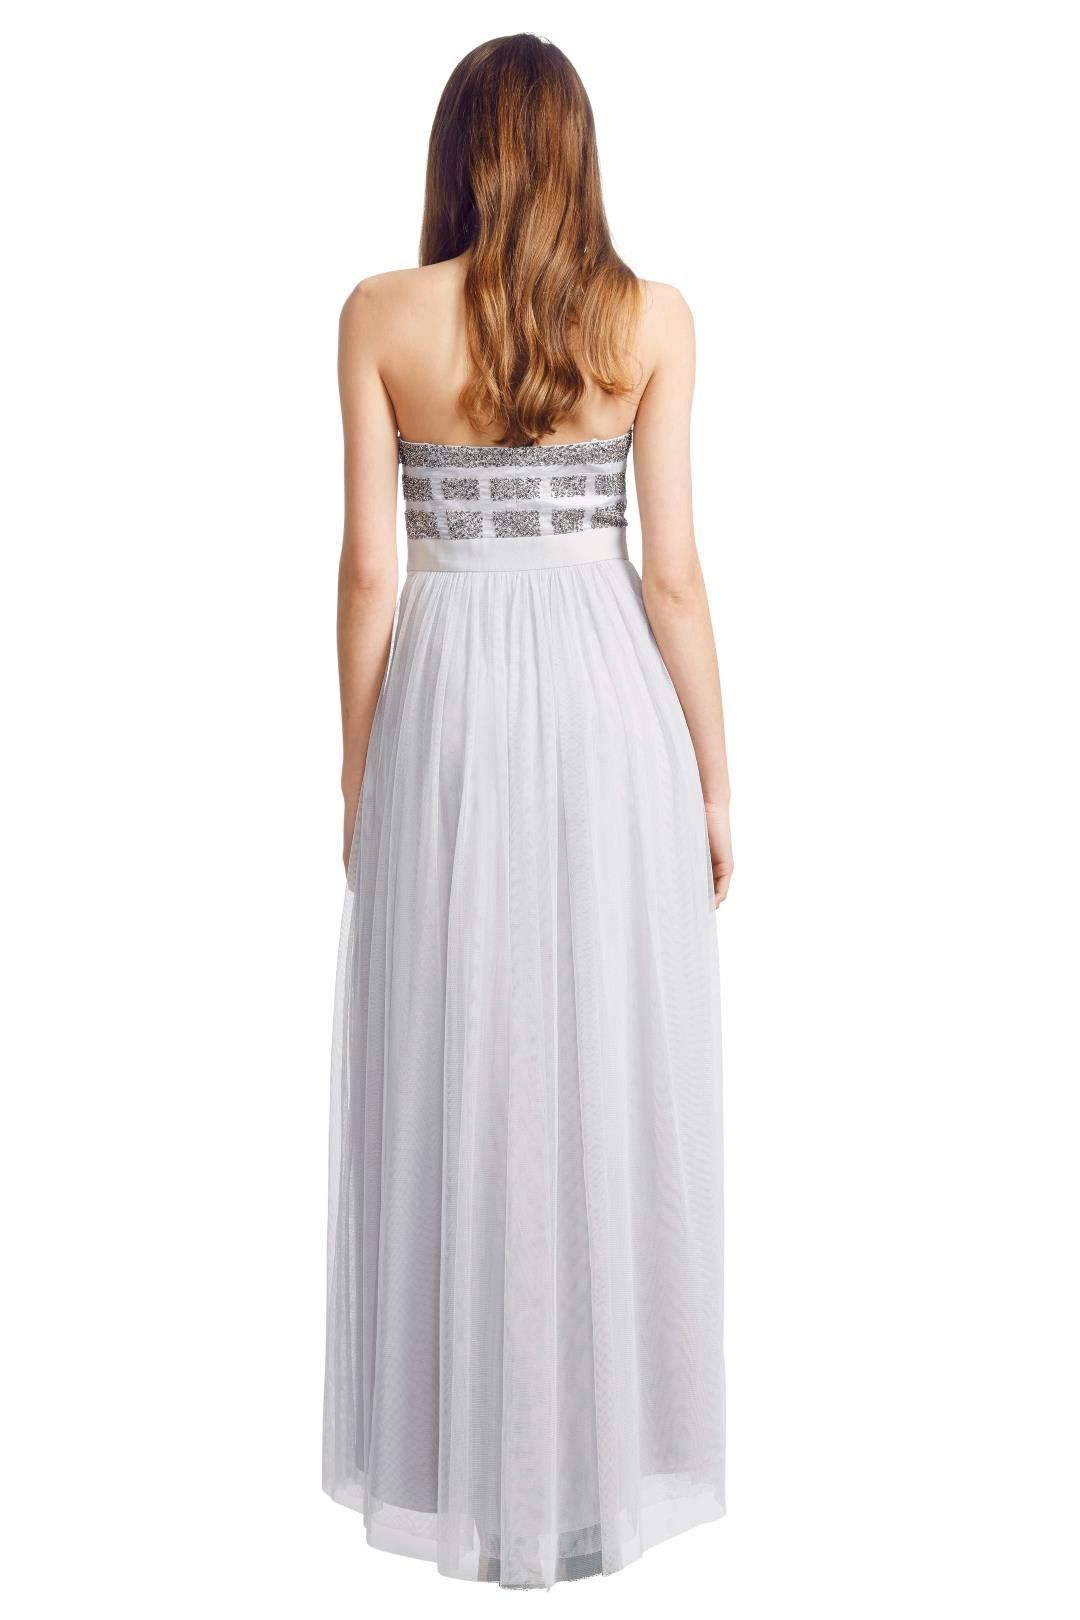 George - Pixel Gown - Silver - Back